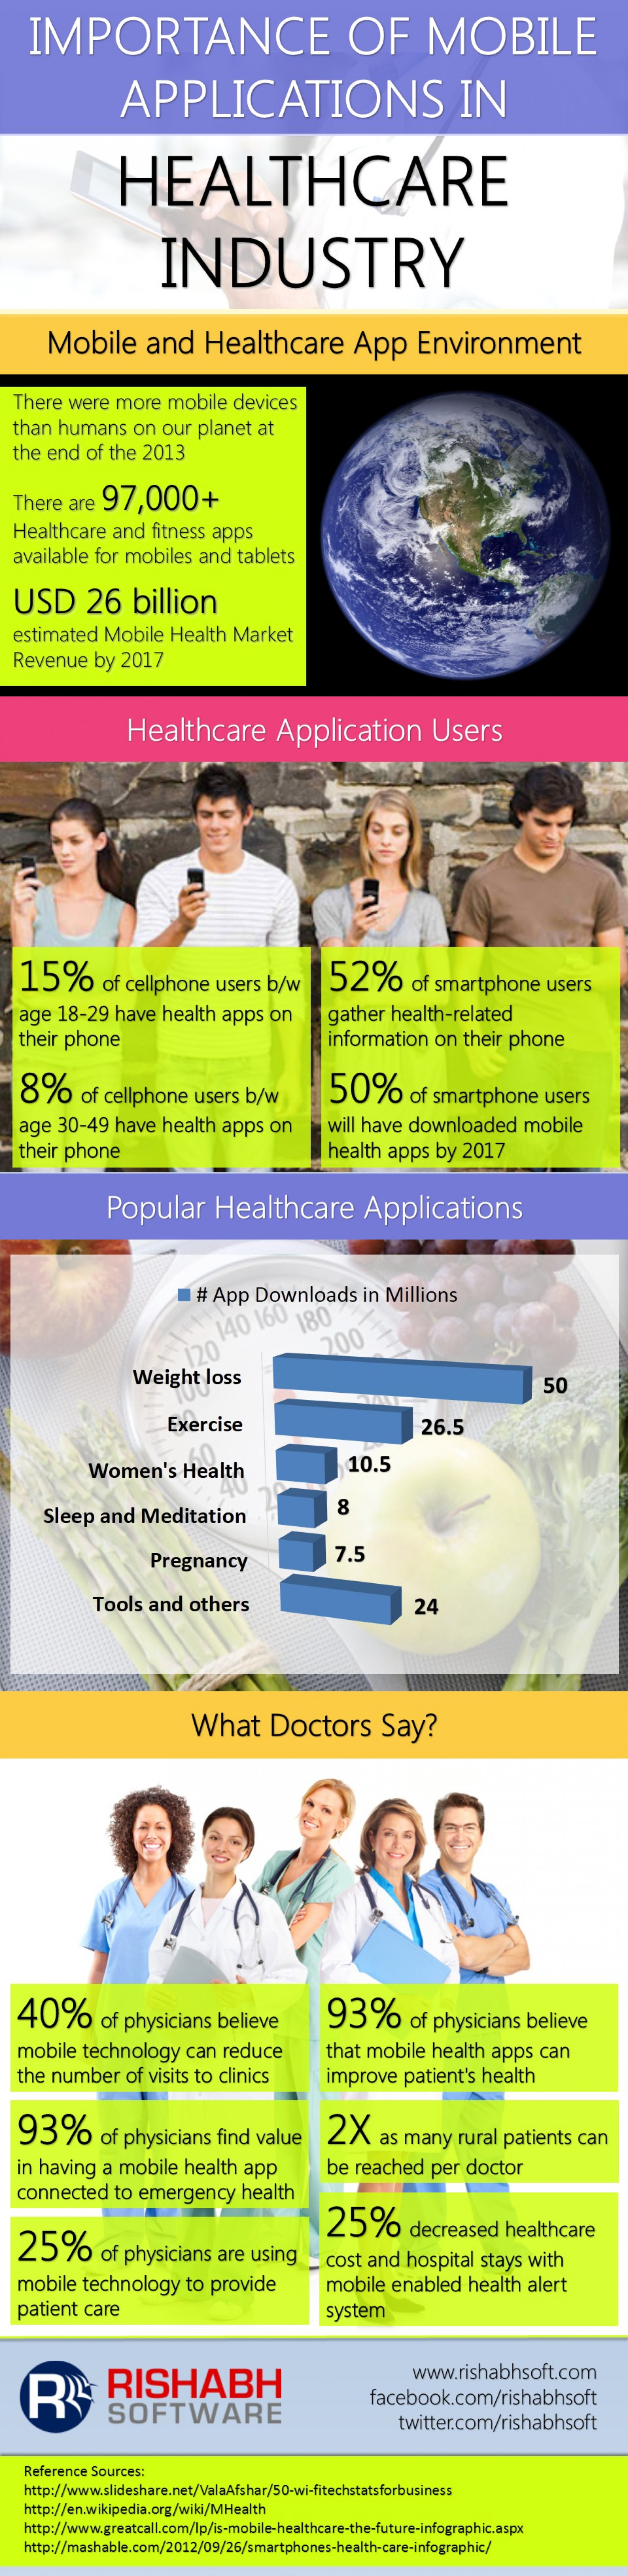 Importance of Mobile Applications in Healthcare Industry Infographic